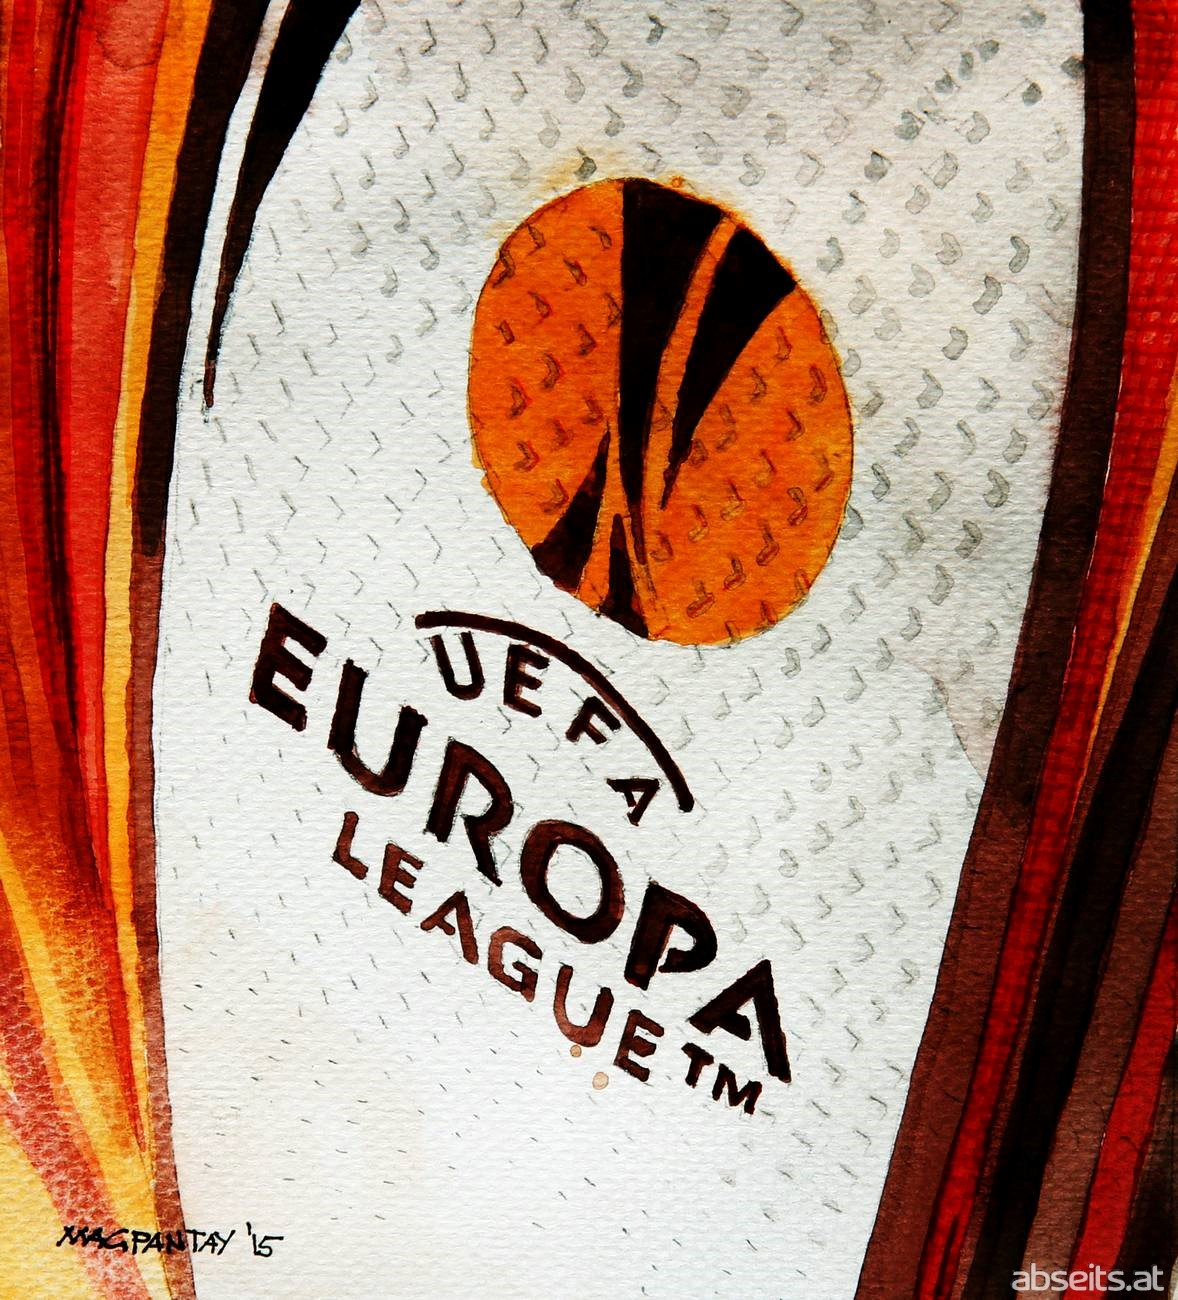 UEFA Europa League Logo_abseits.at